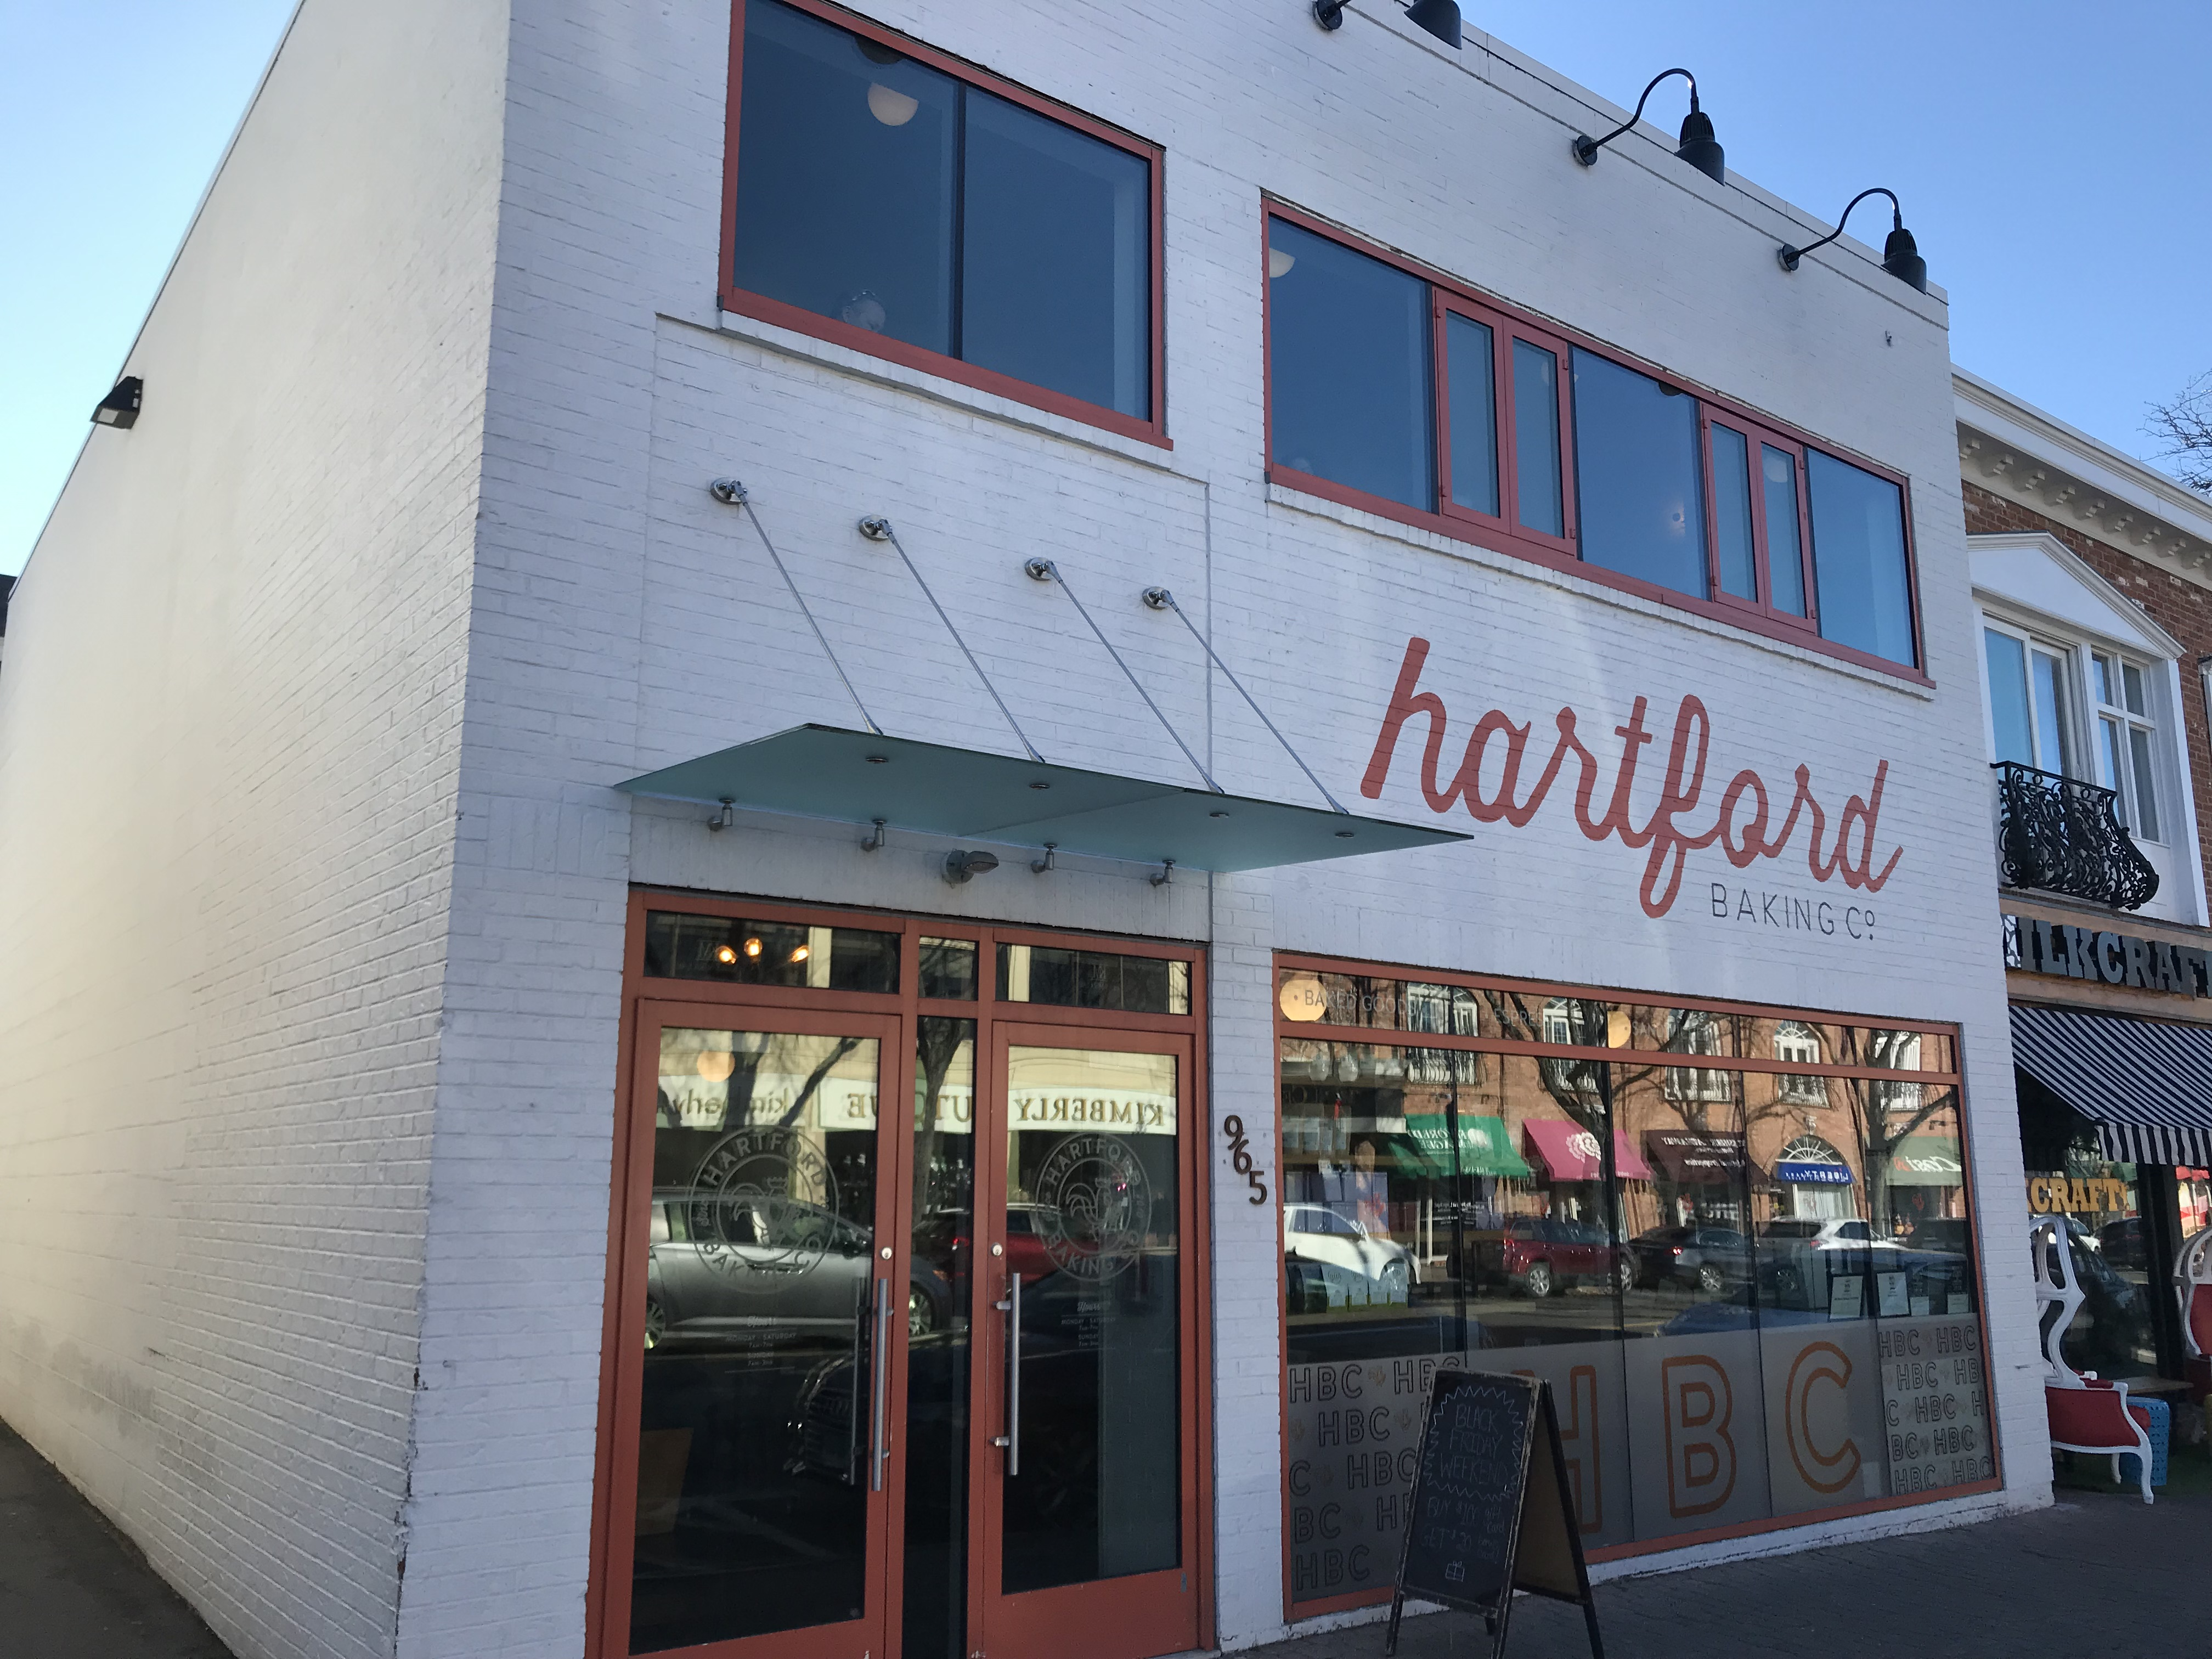 Hartford Baking Co | In The News